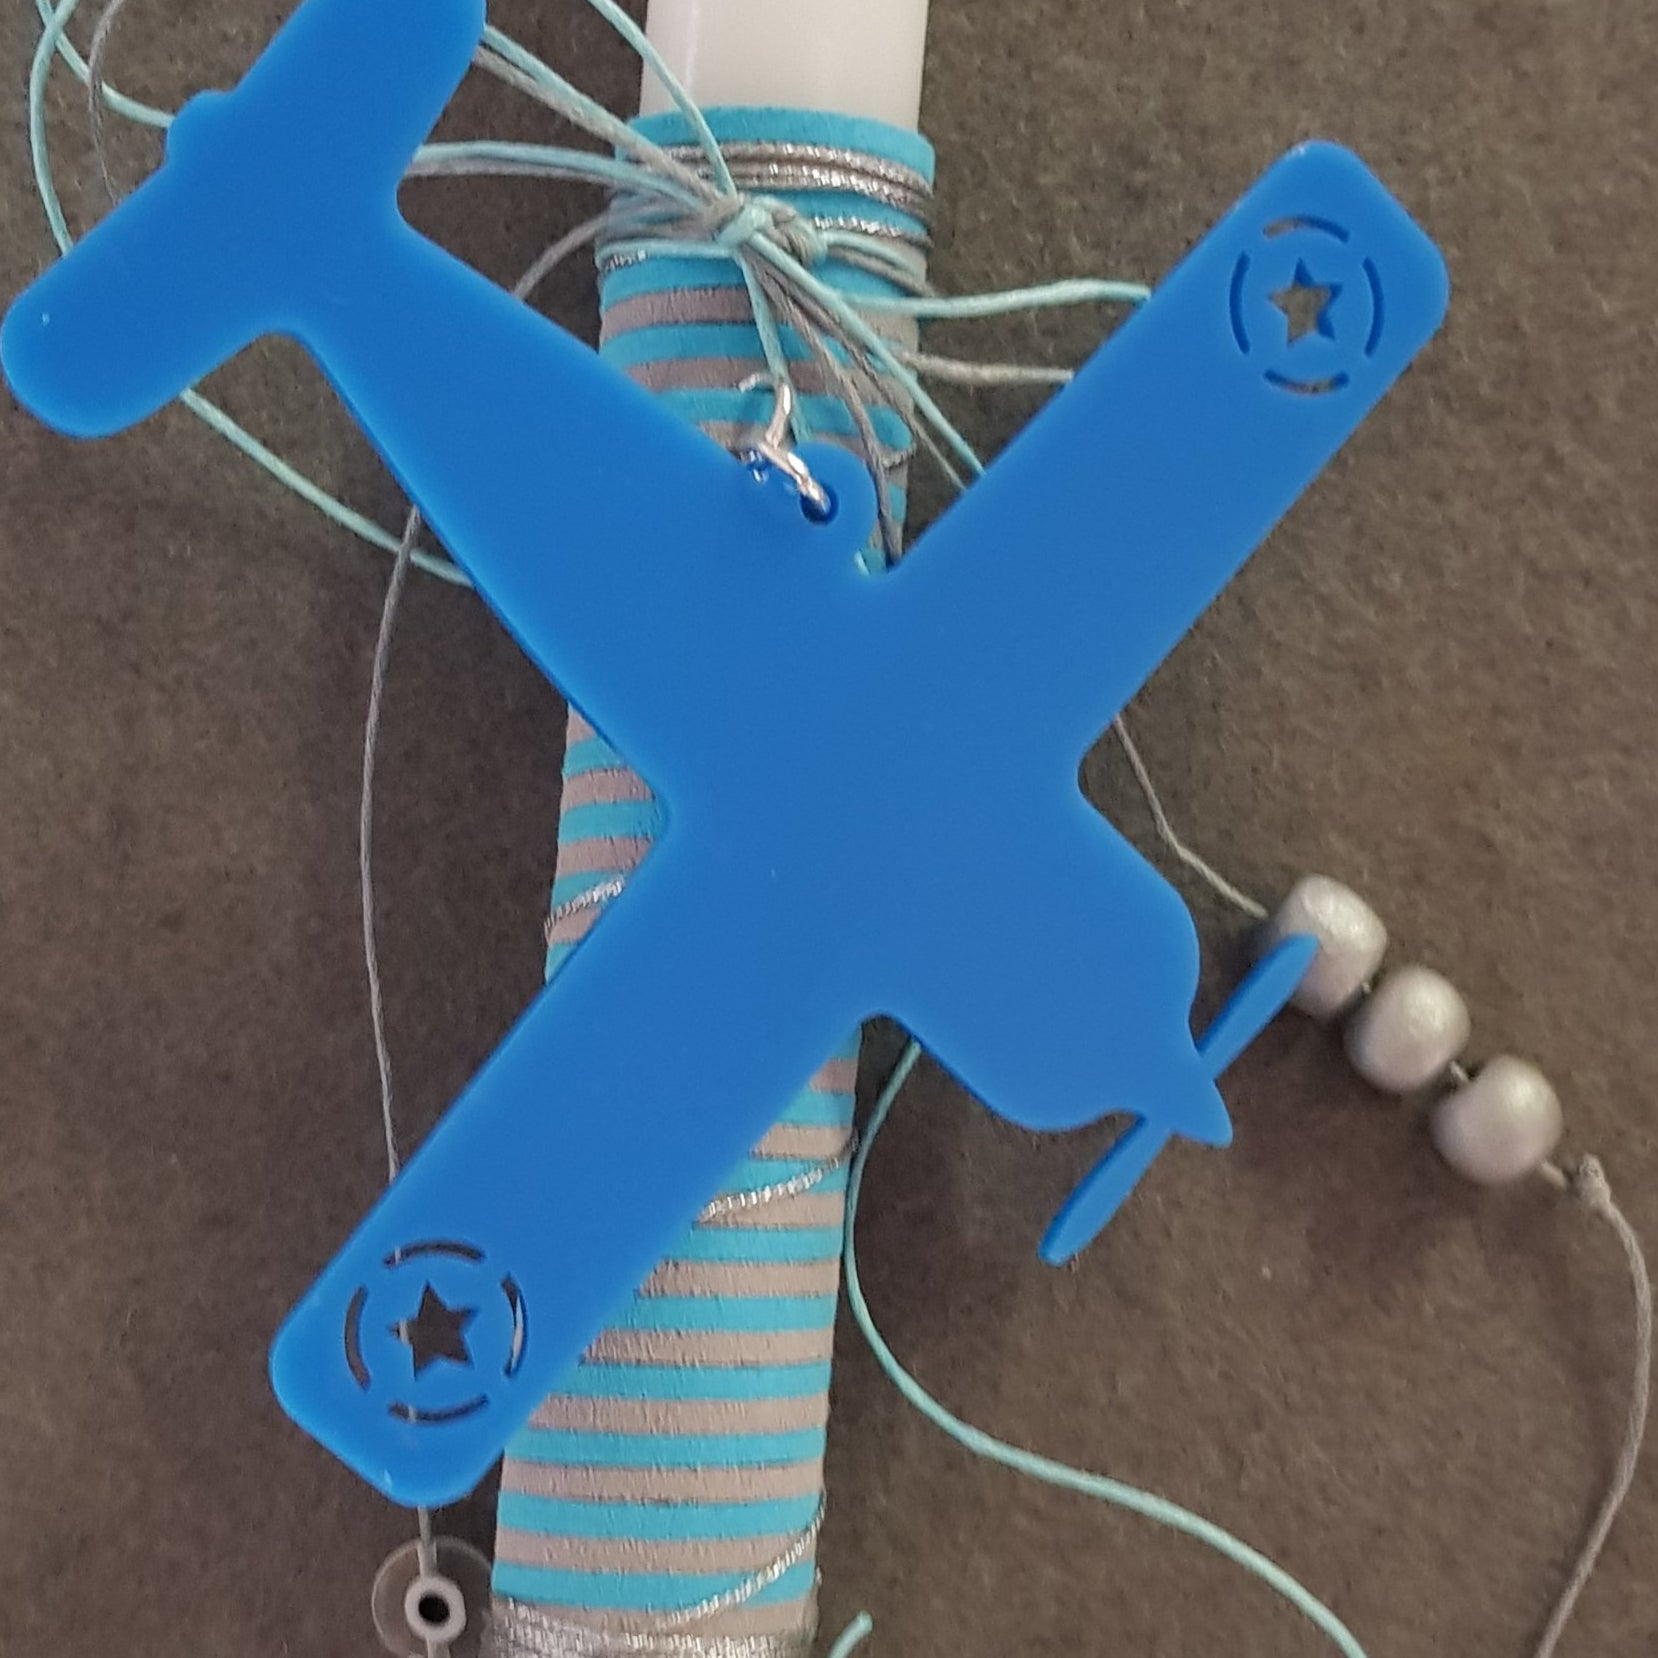 Blue aeroplane lambada with mati and beads - Easter collection